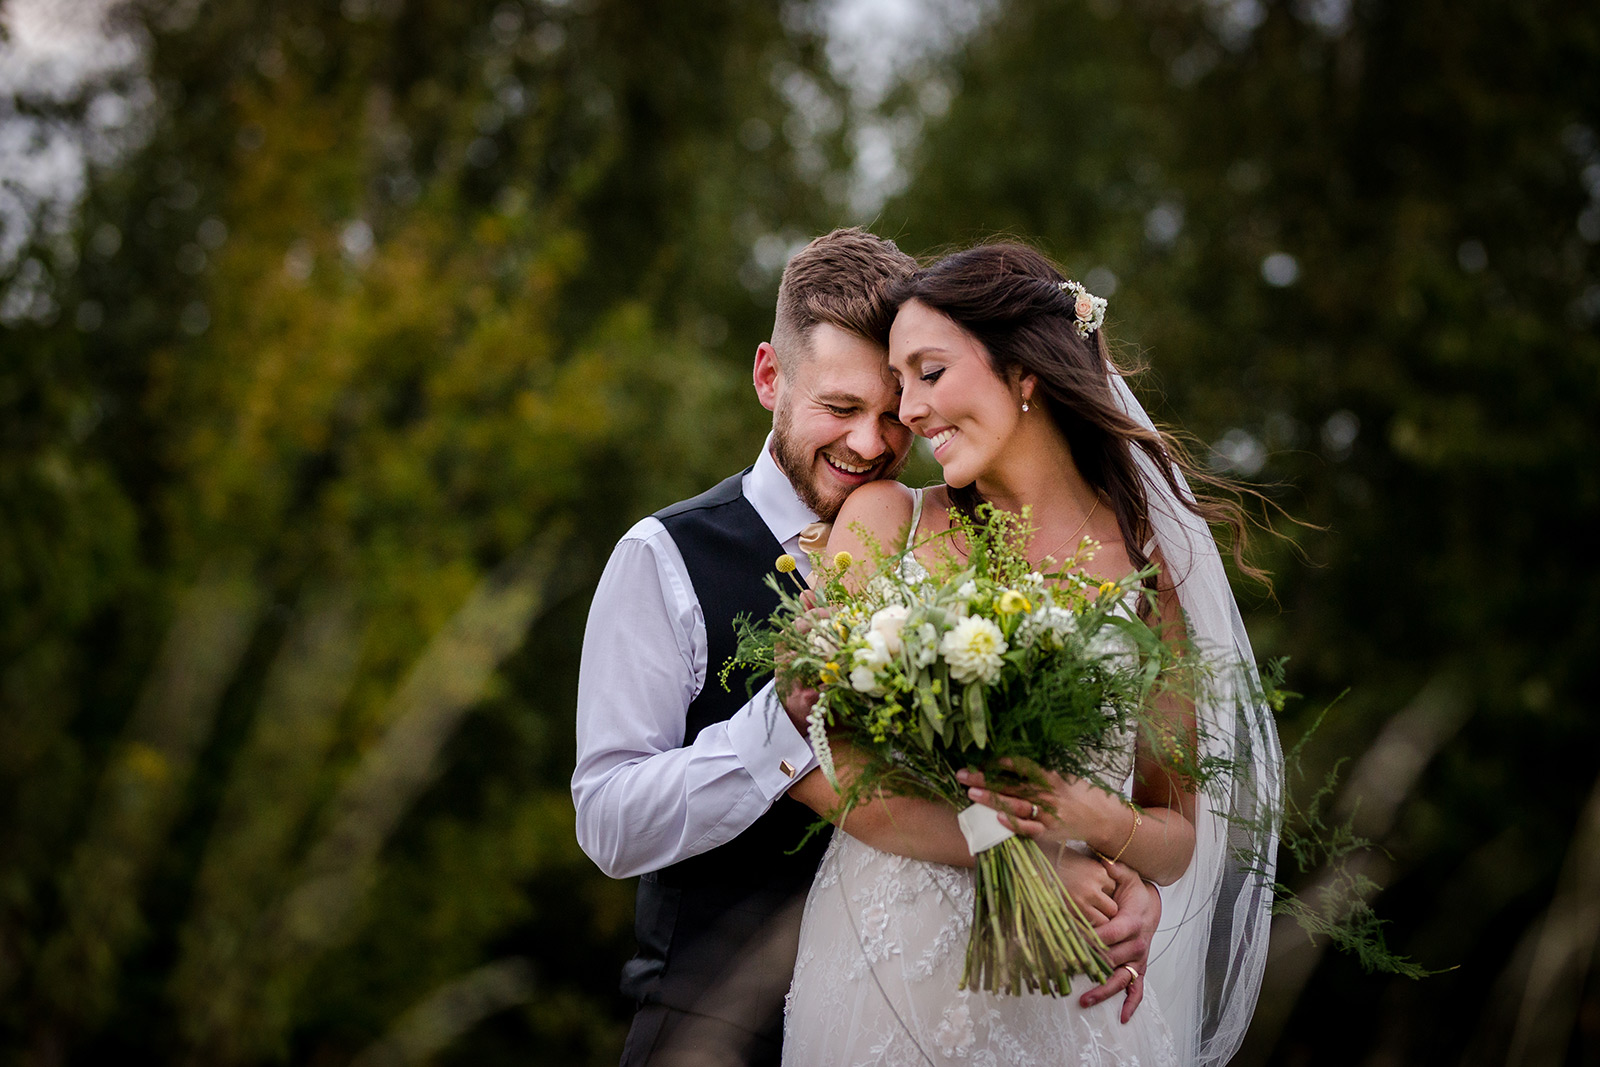 James & Becky's Rookery Farm Wedding in Bedfordshire